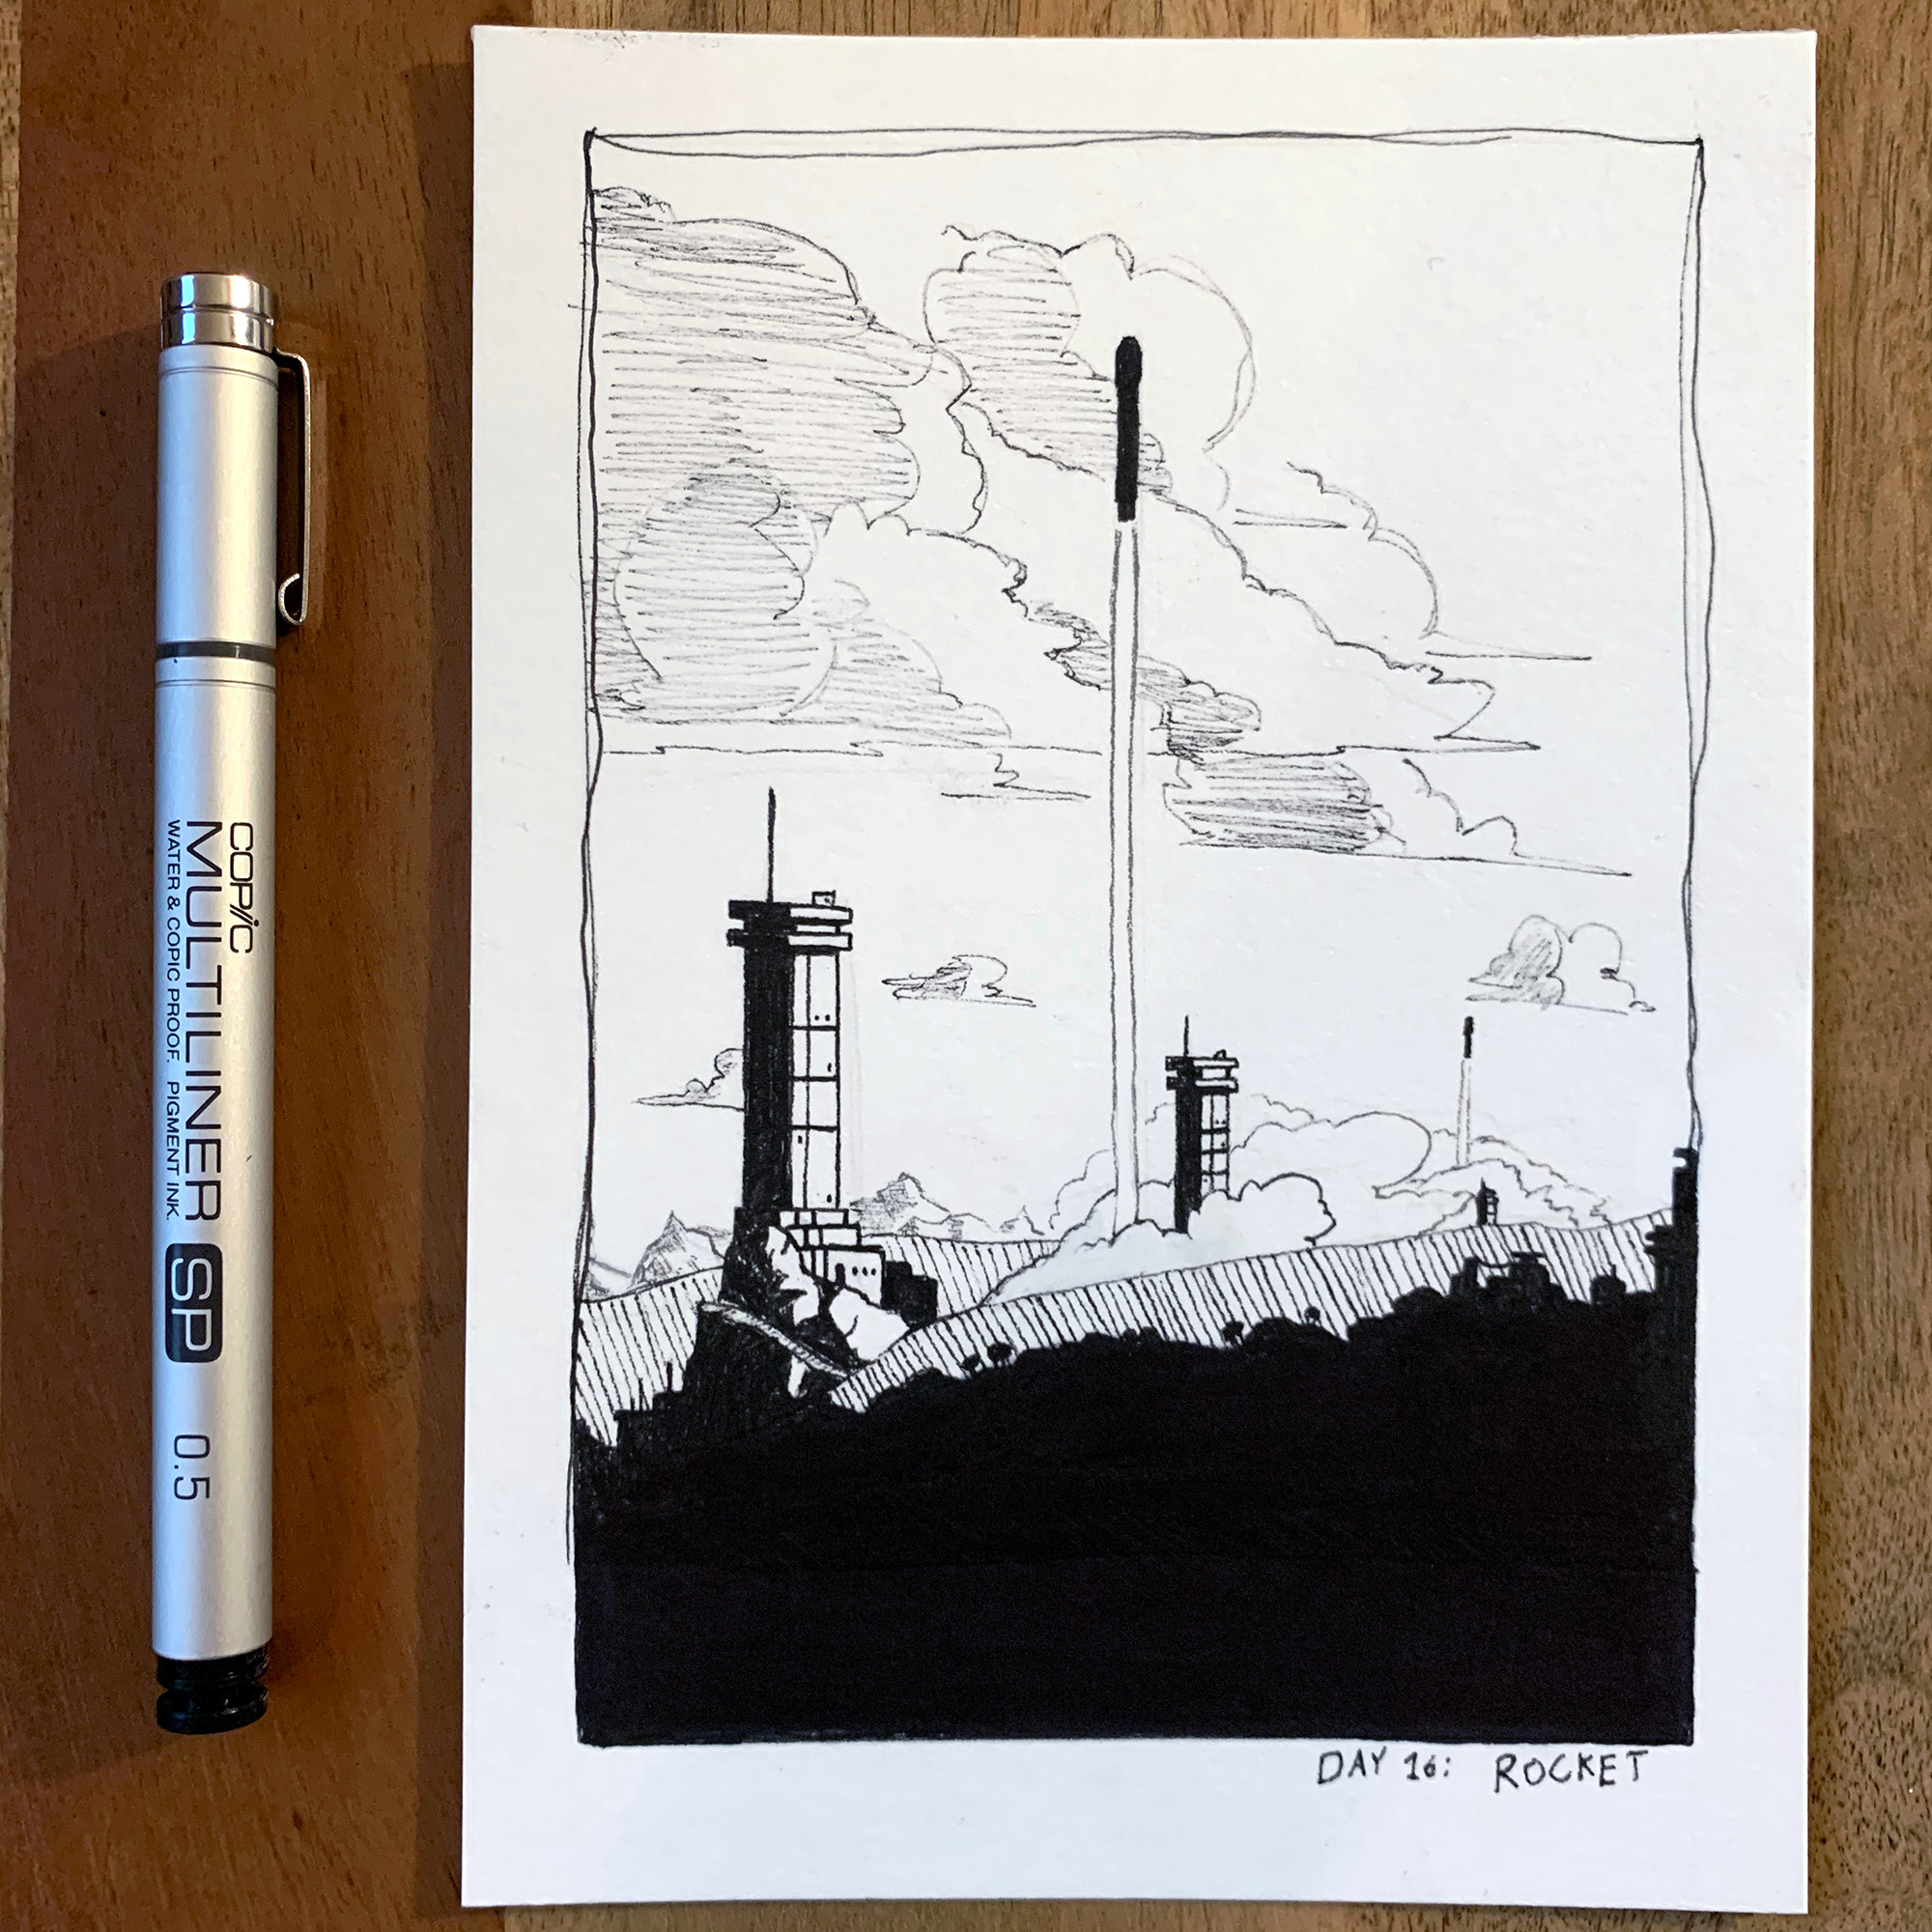 (Day 16: Rocket) Leaving the ground, we bathe in starlight.